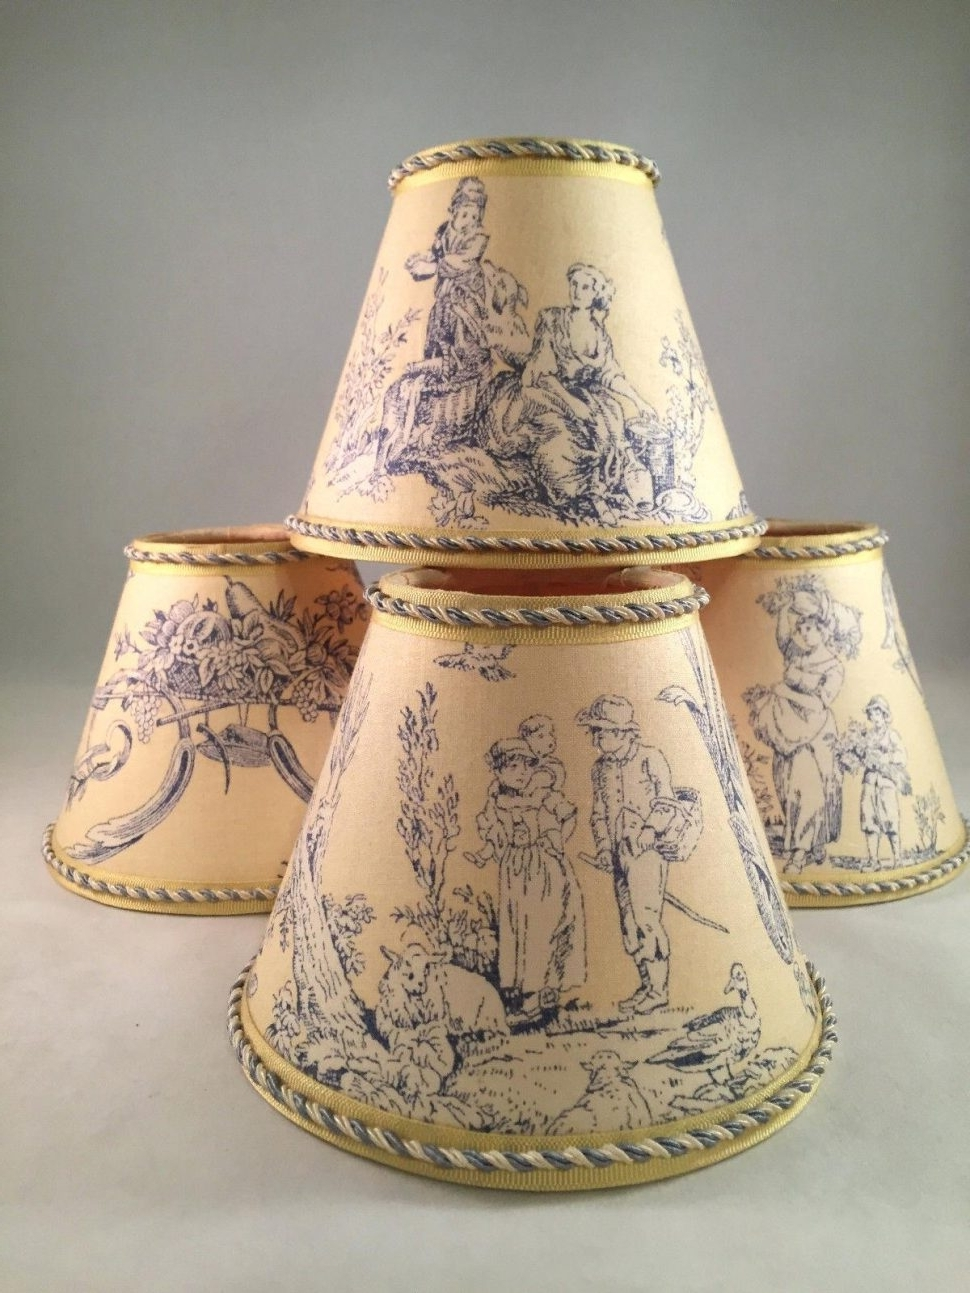 Clip On Chandelier Lamp Shades Intended For Current Red Toile Chandelier Lamp Shades – Chandelier Designs (View 7 of 15)